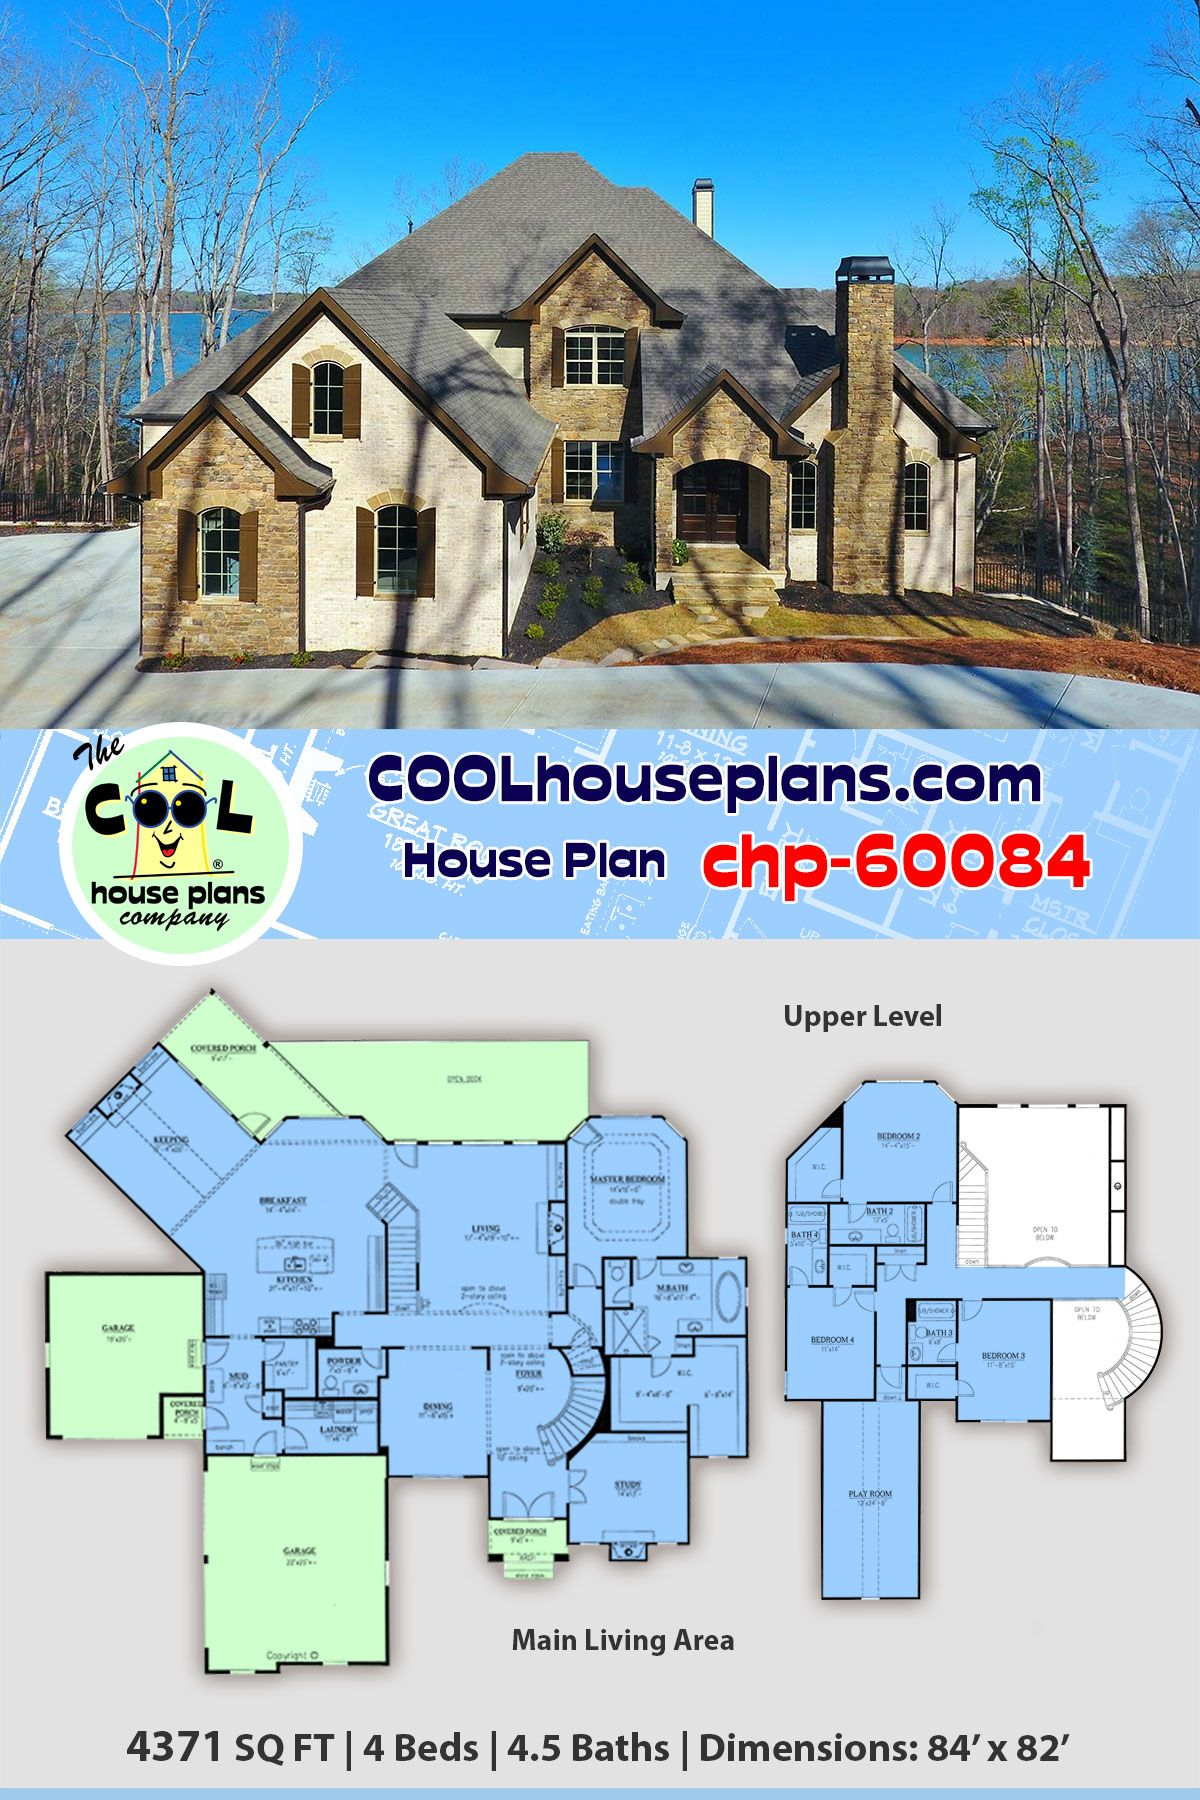 Luxury Traditional Home Plan Chp 60084 Is 4371 Sq Ft 4 Bedrooms 4 5 Bathrooms On Walk Out Basement Family House Plans House Plans Luxury House Plans